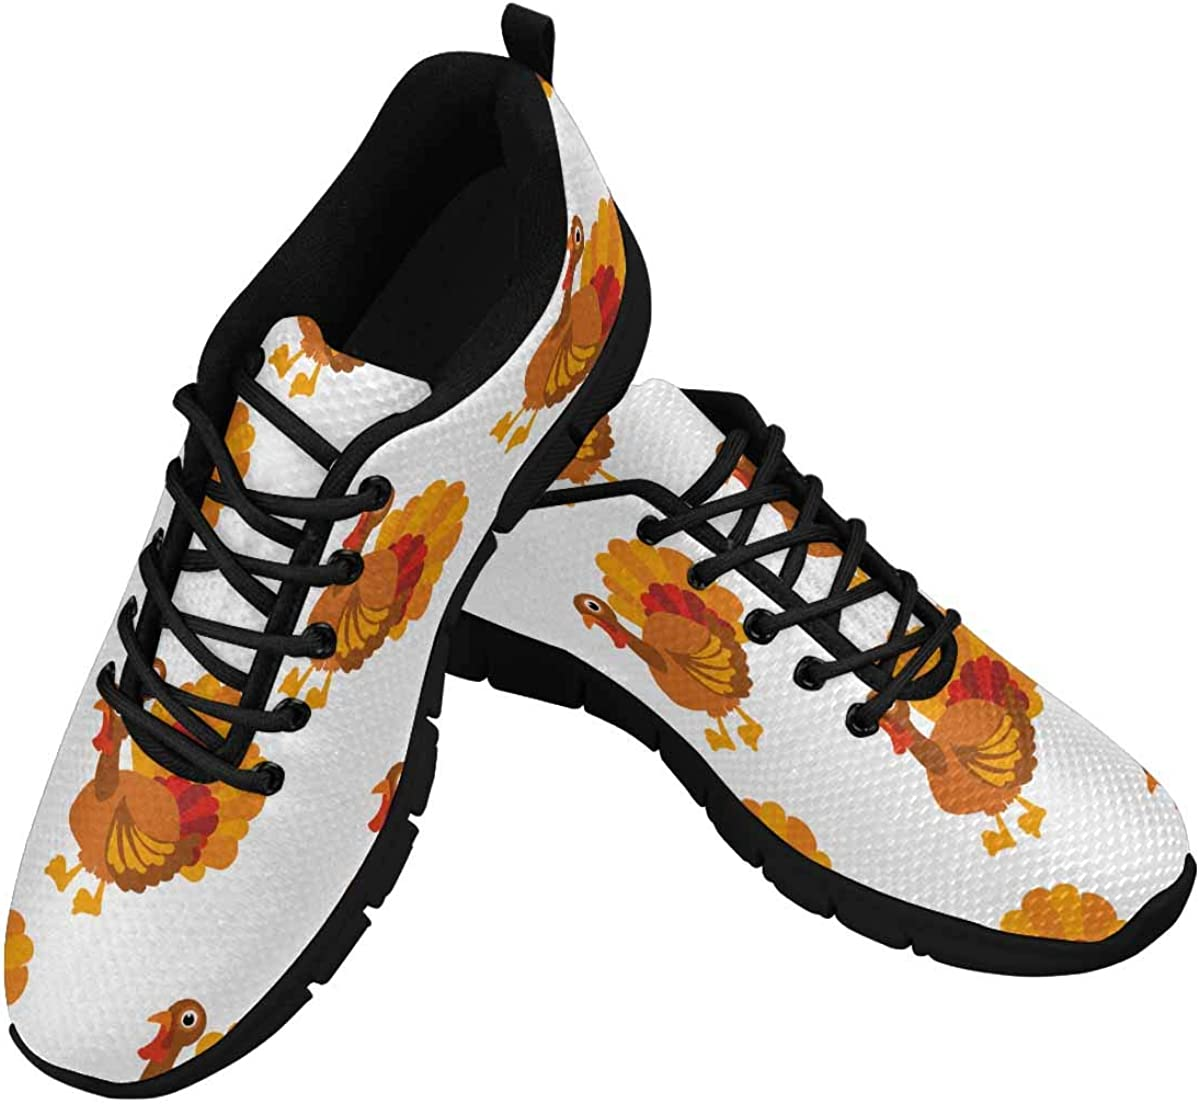 INTERESTPRINT Thanksgiving Turkey Background Women's Running Shoes Mesh Breathable Sports Casual Shoes